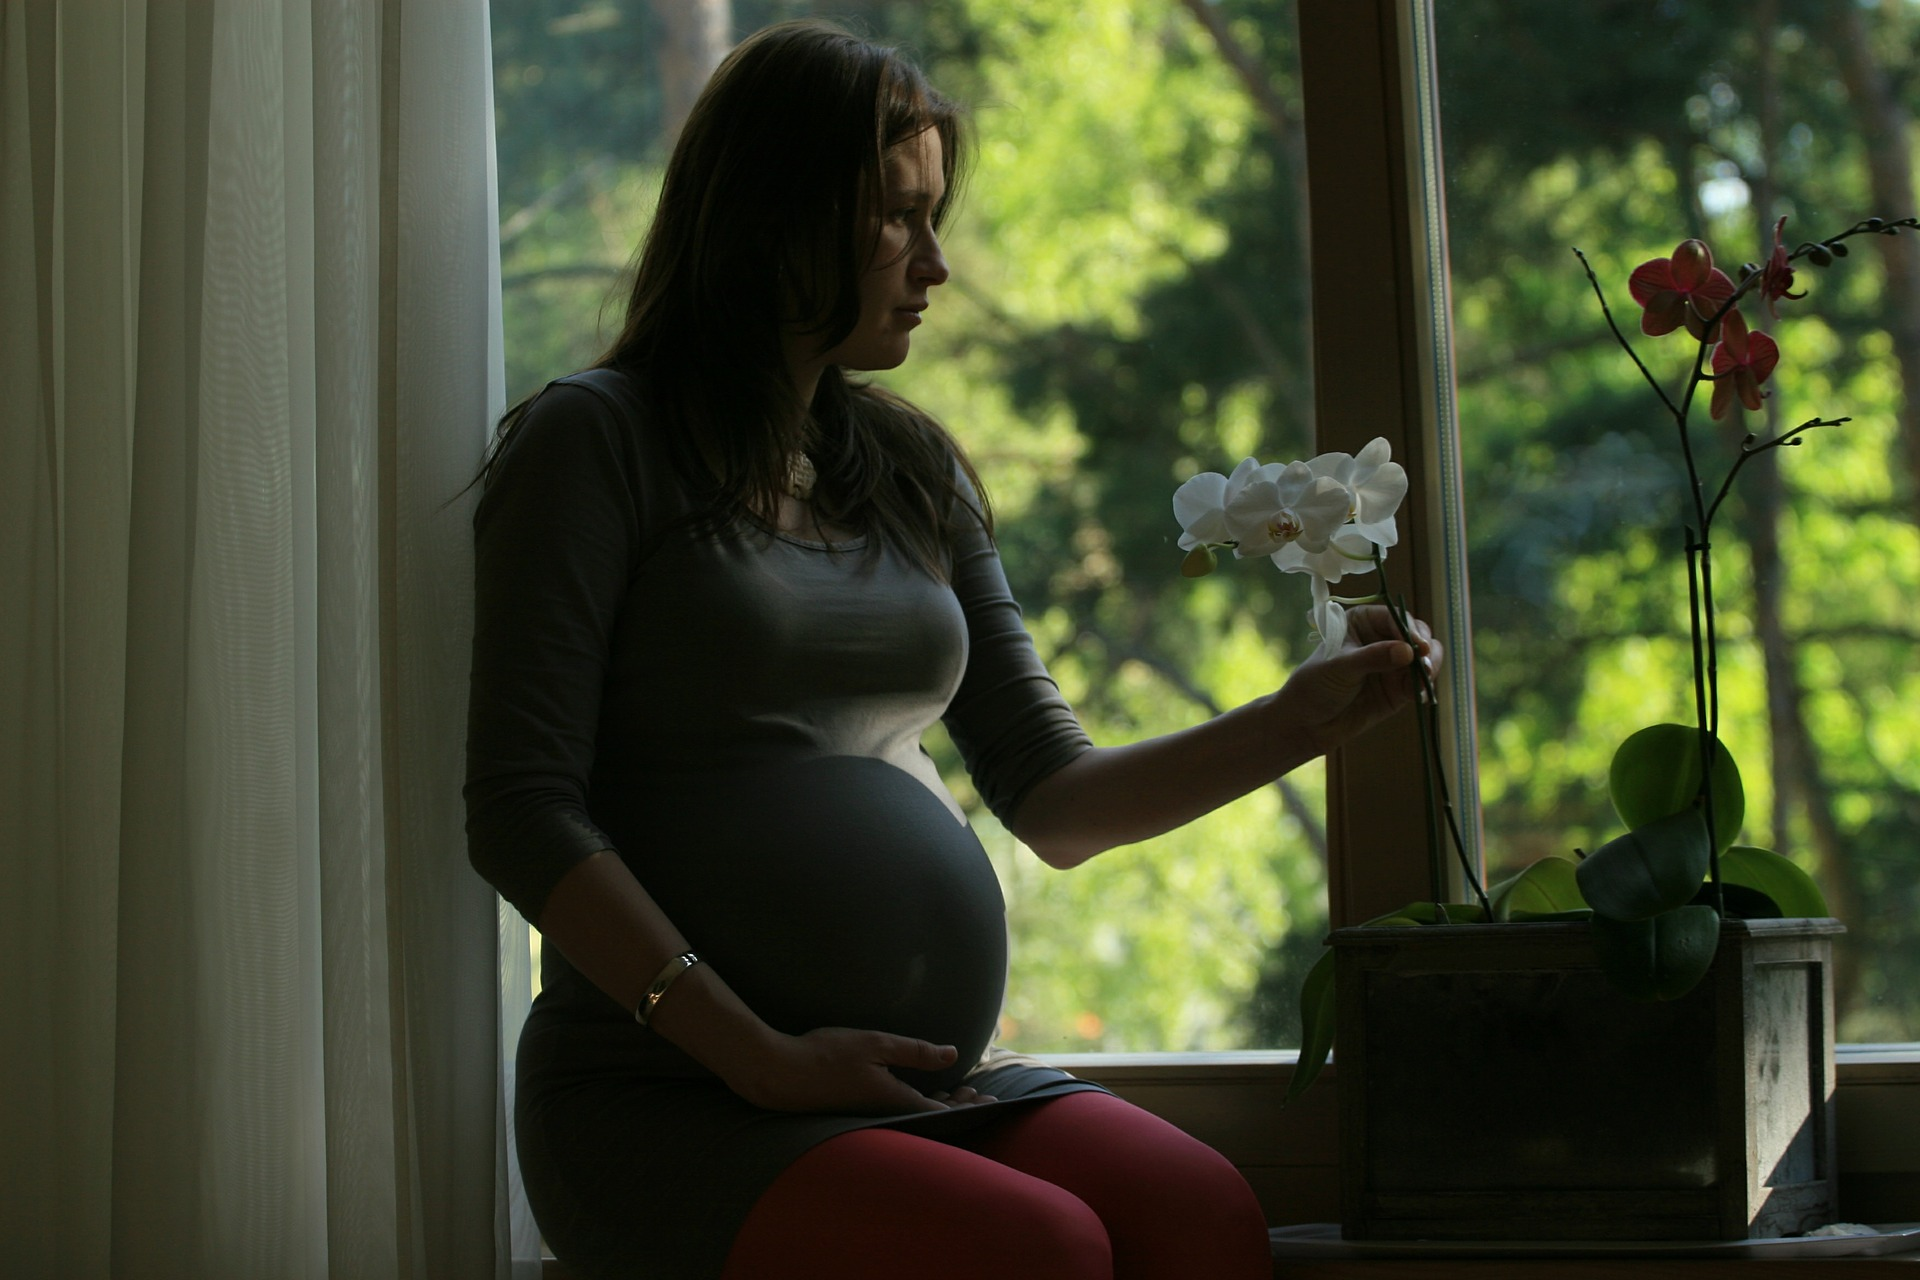 Risks and side effects of IVF